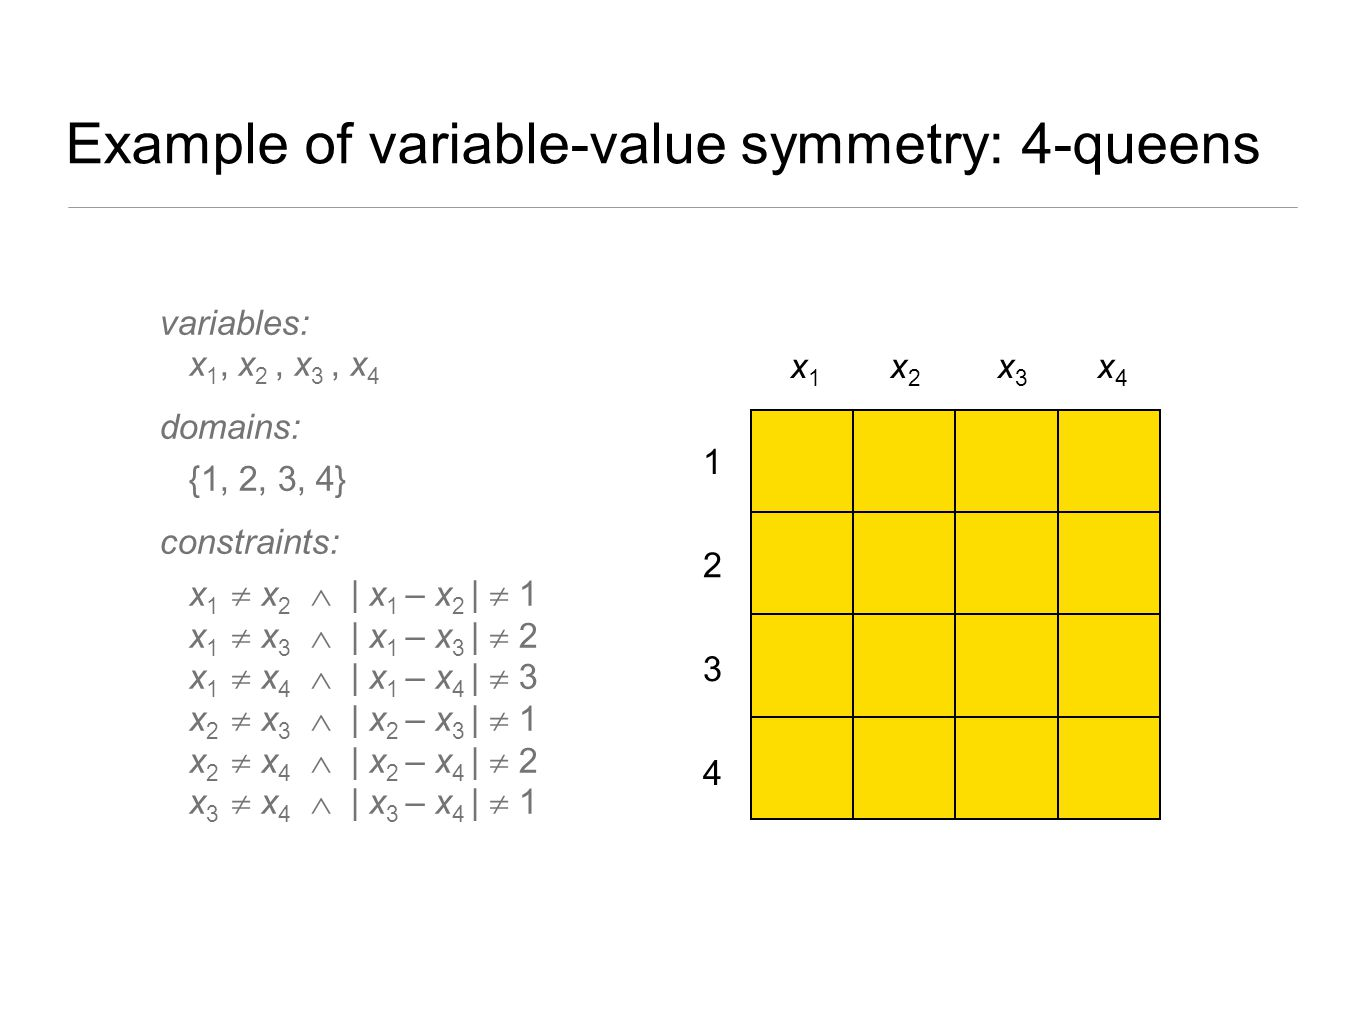 Example of variable-value symmetry: 4-queens 4 3 2 1 x1 x1 x2x2 x3 x3 x4 x4 variables: x 1, x 2, x 3, x 4 domains: {1, 2, 3, 4} constraints: x 1  x 2